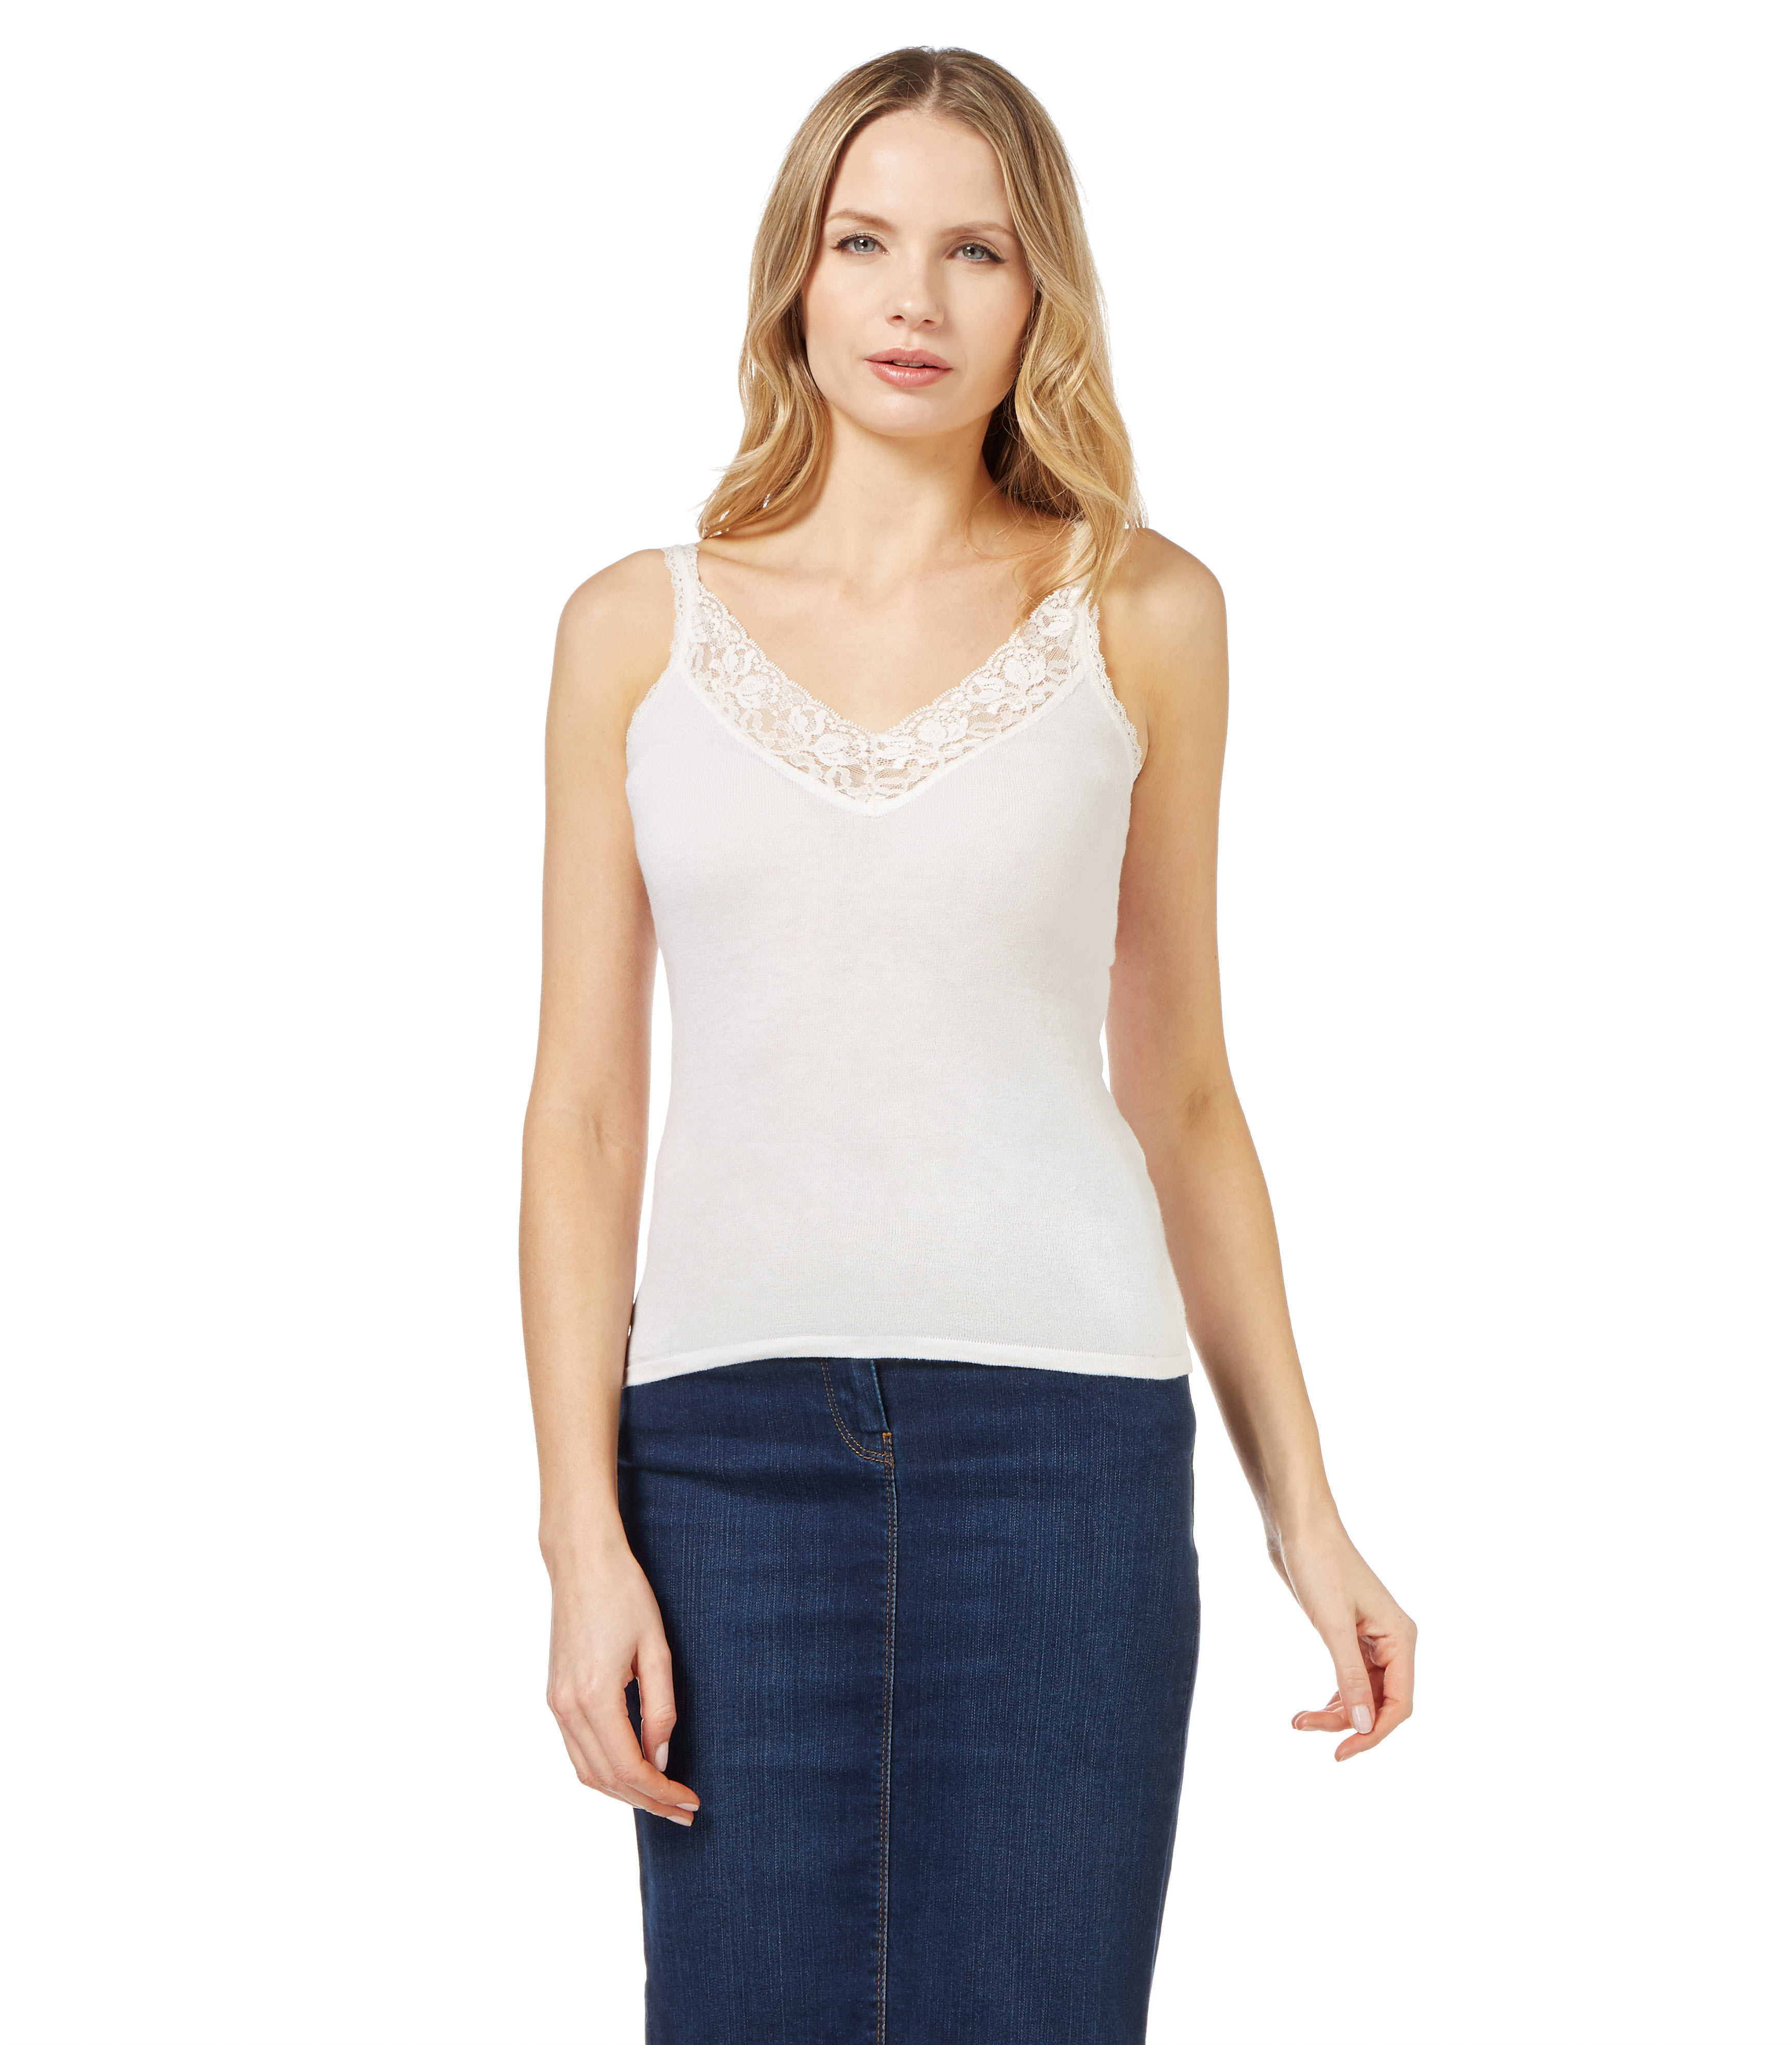 Find lace camisole tops at ShopStyle. Shop the latest collection of lace camisole tops from the most popular stores - all in one place.